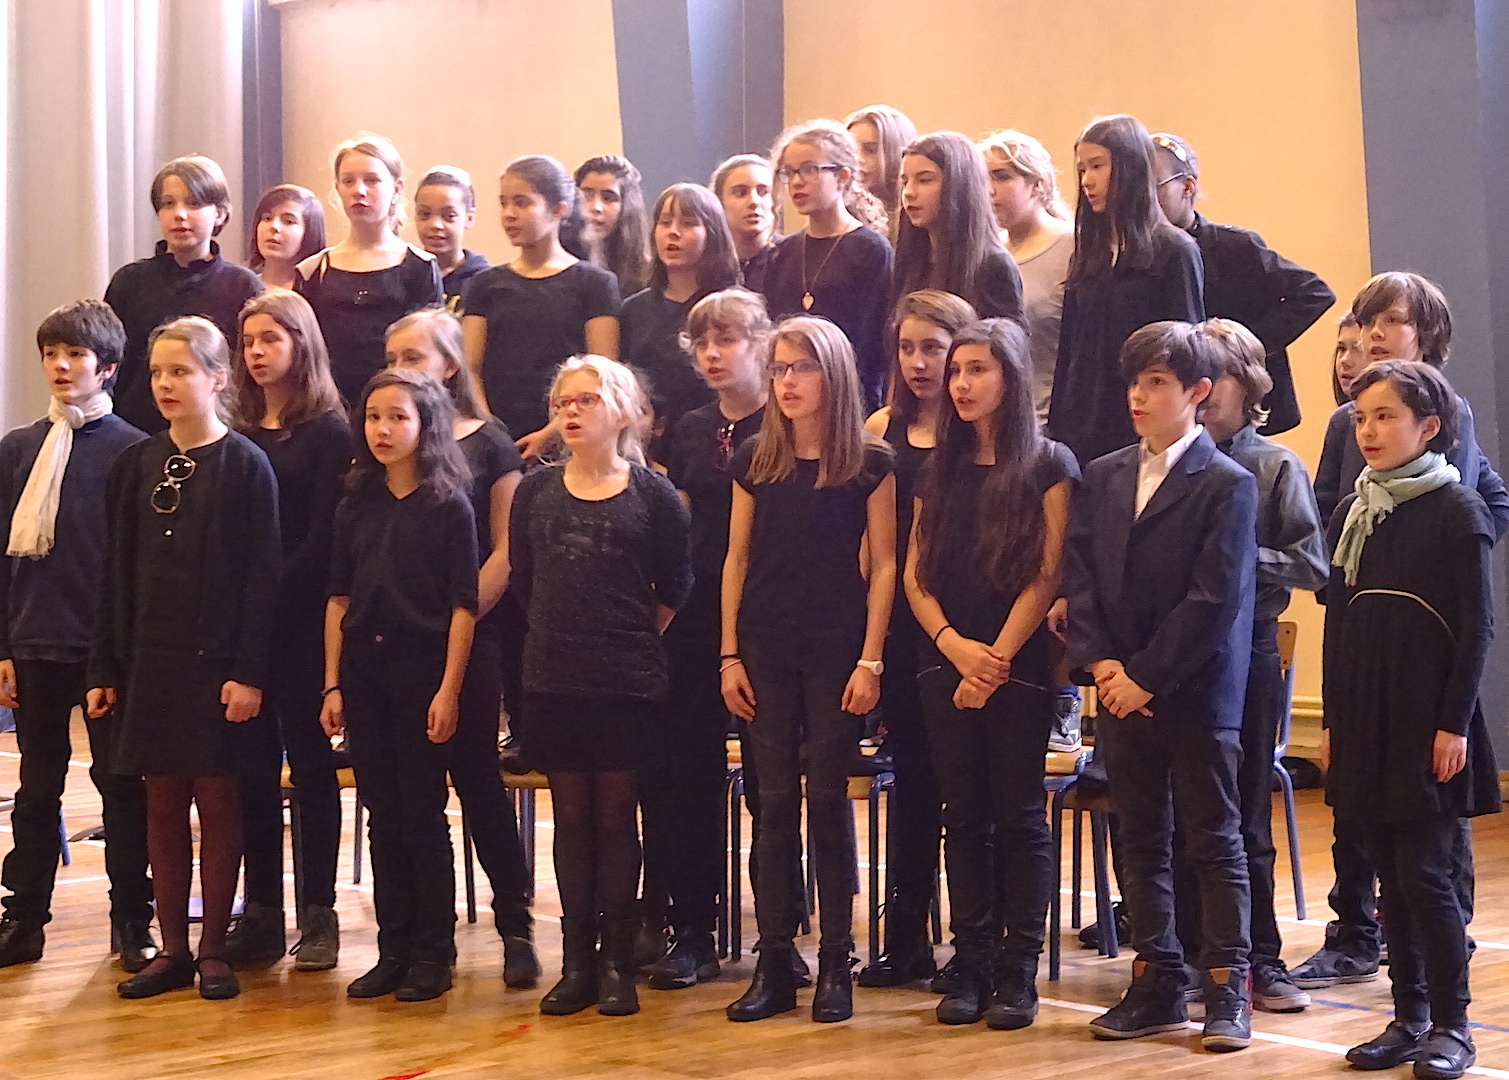 Concert chorale 10 avril 2015